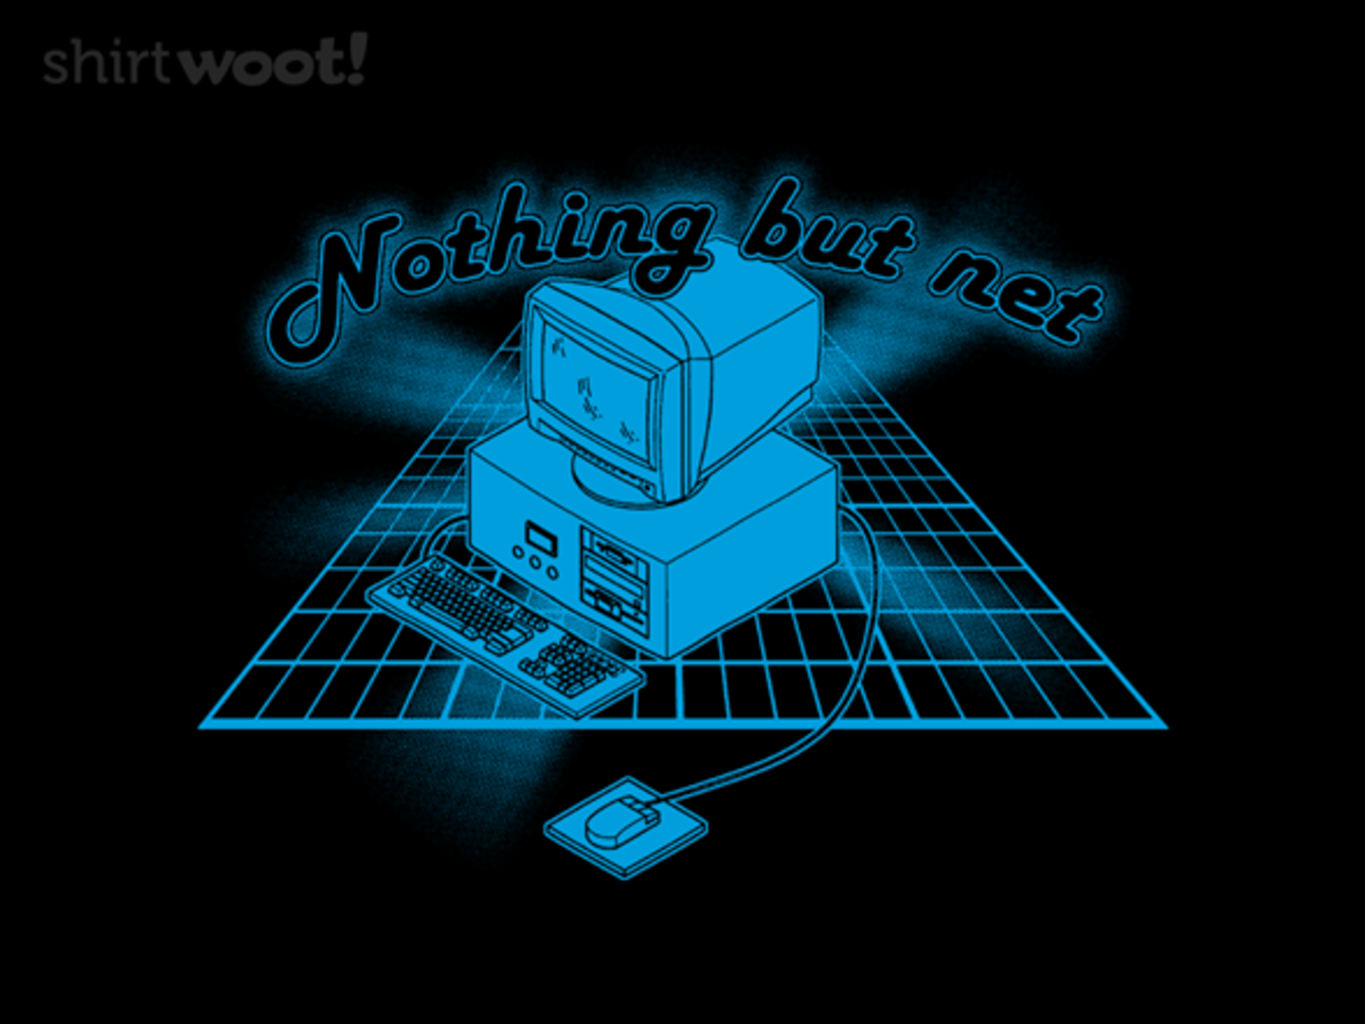 Woot!: Nothing But Net